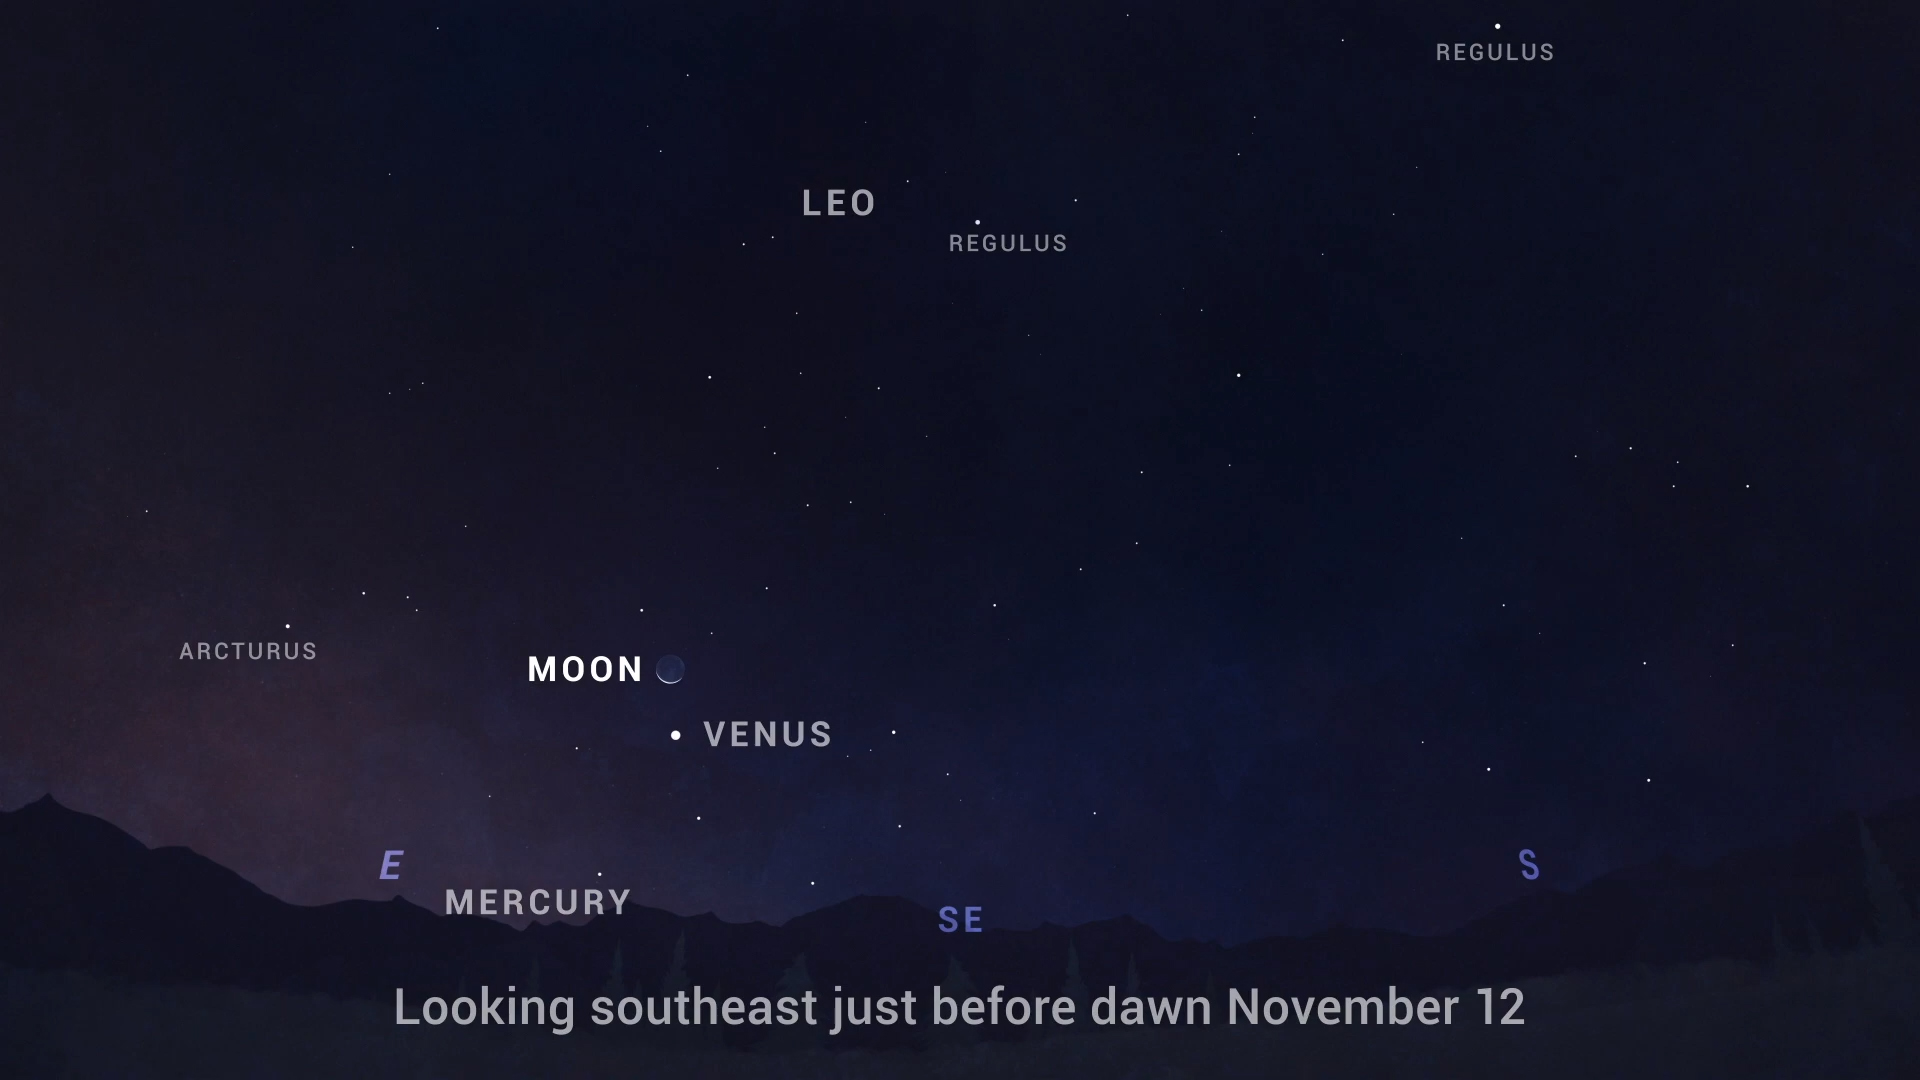 Chart showing the Moon and Venus rising southeast before dawn on Nov. 12.